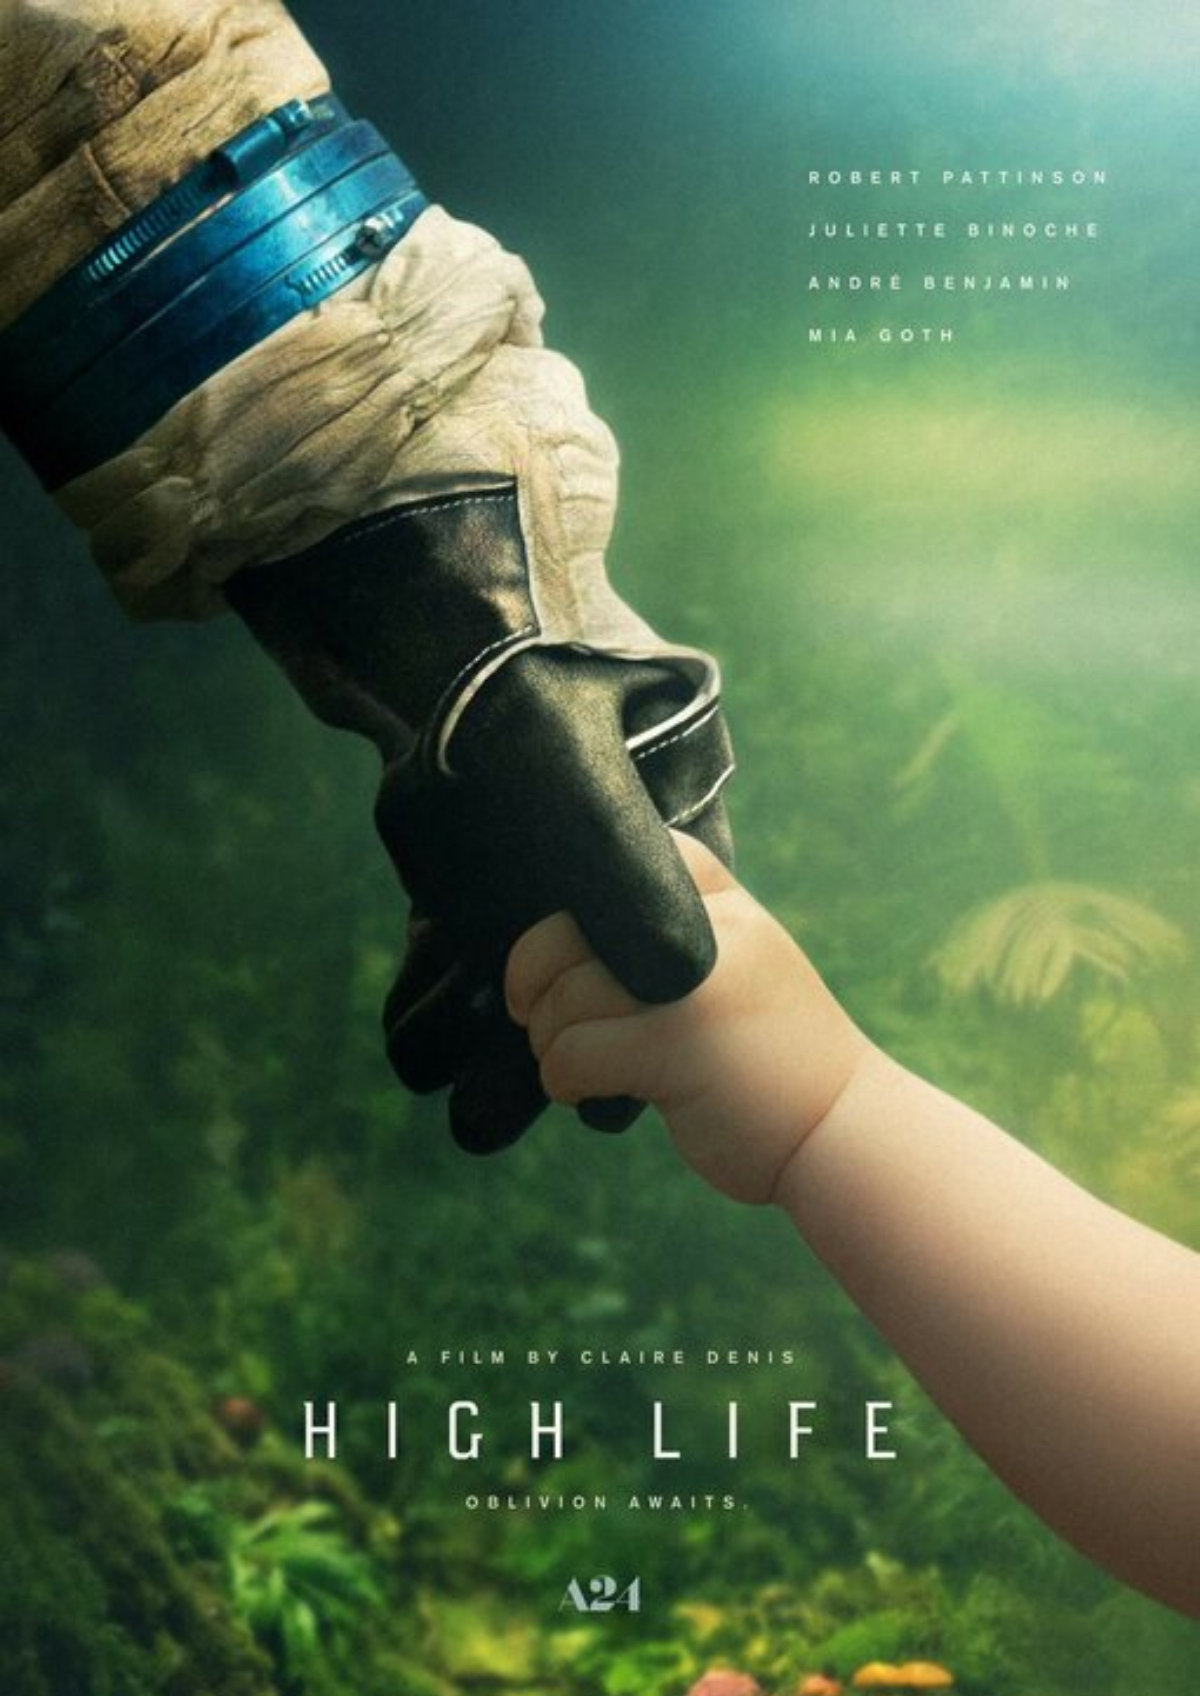 'High Life' movie poster